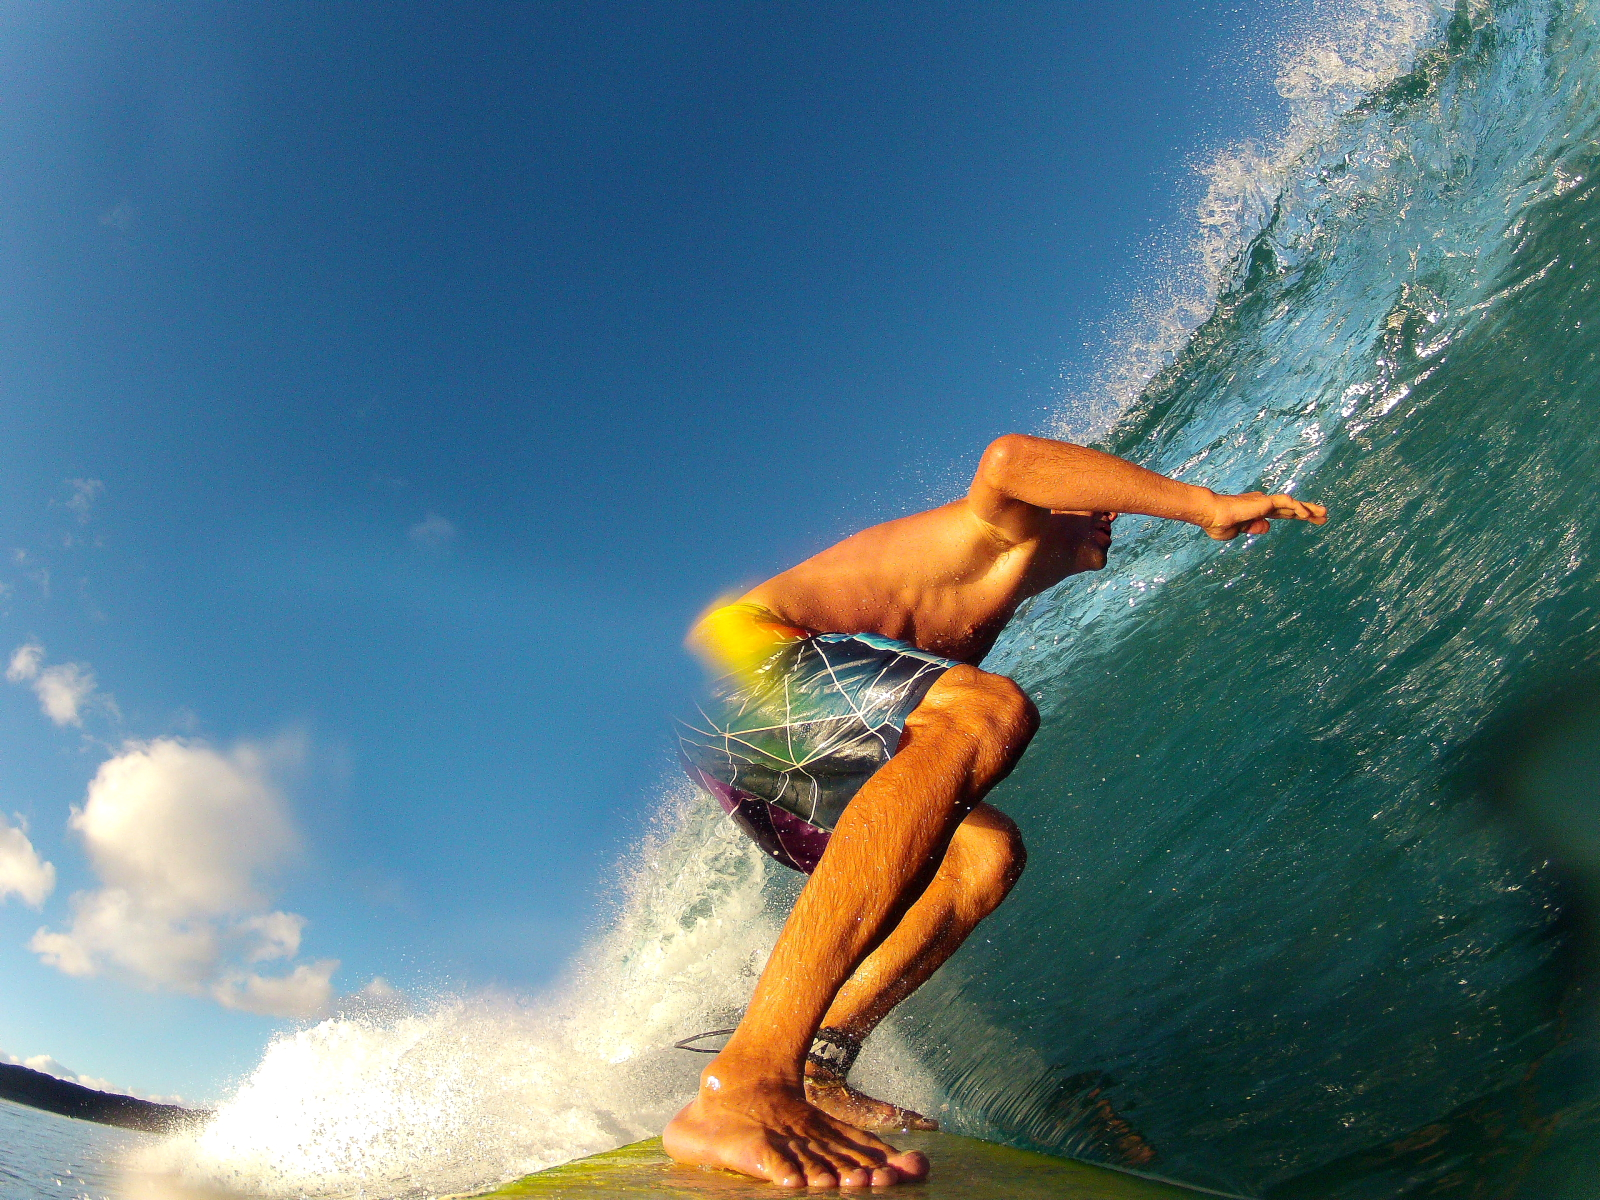 Gopro Wallpaper Maui south swell gopro 1600x1200